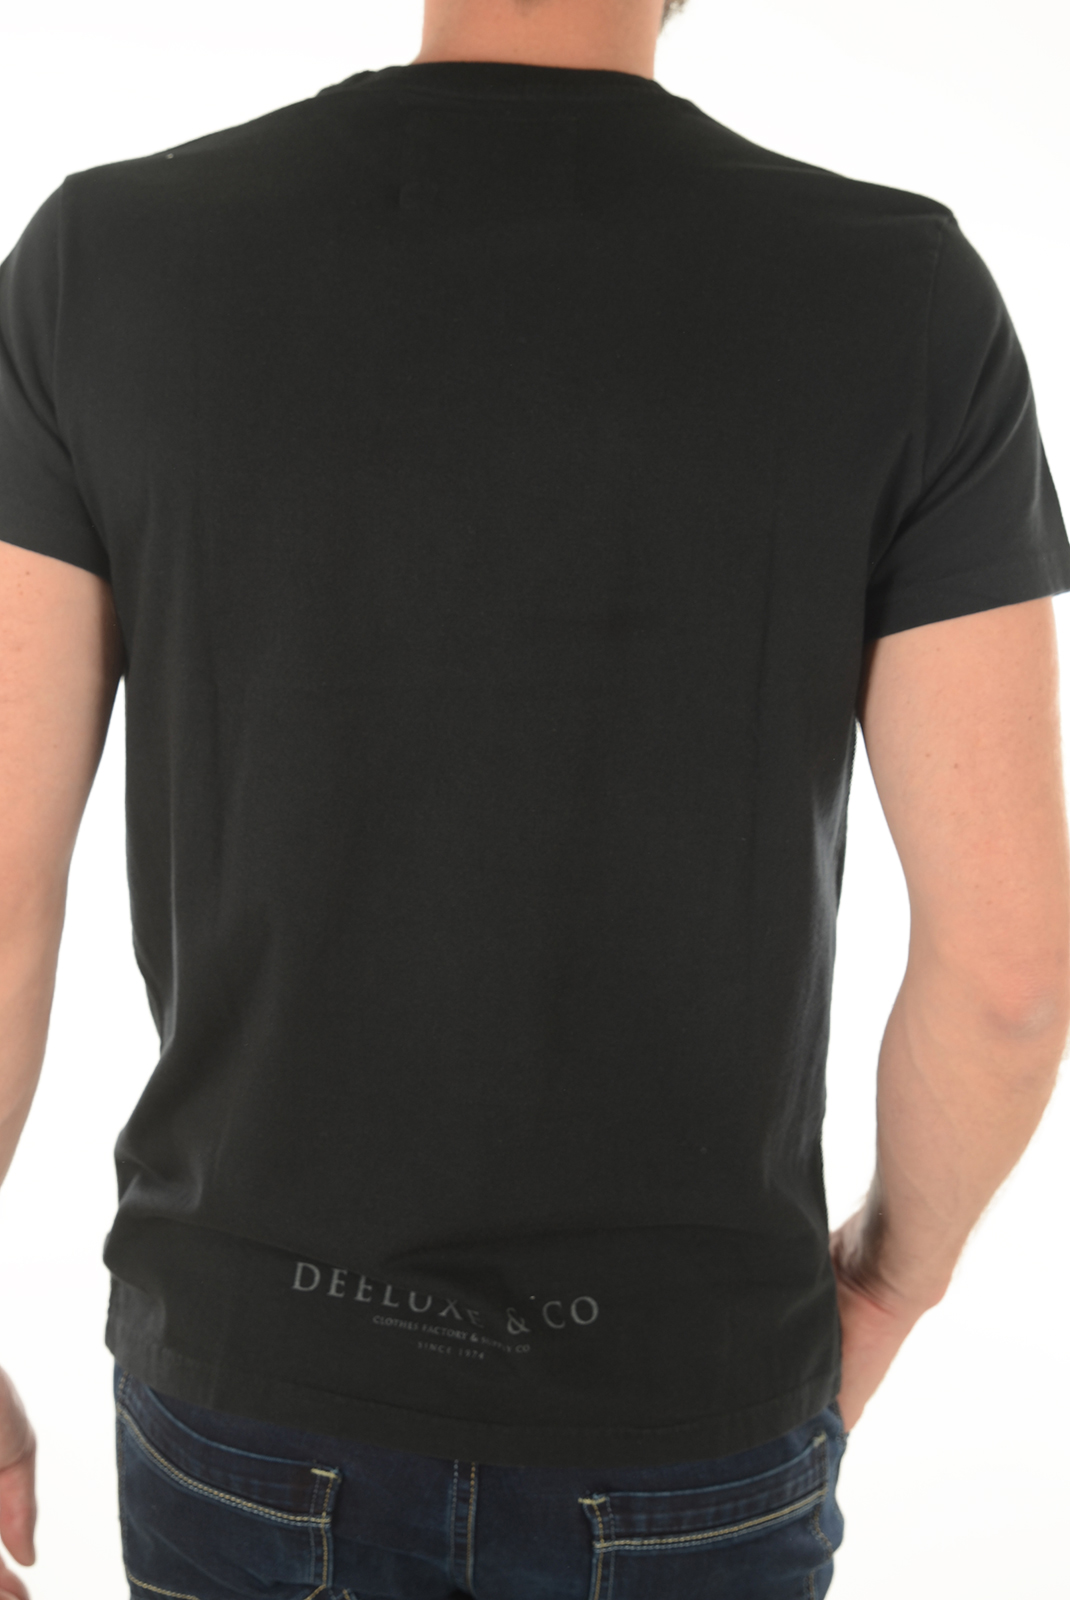 Tee-shirts manches courtes  Deeluxe OBSESSION NOIR